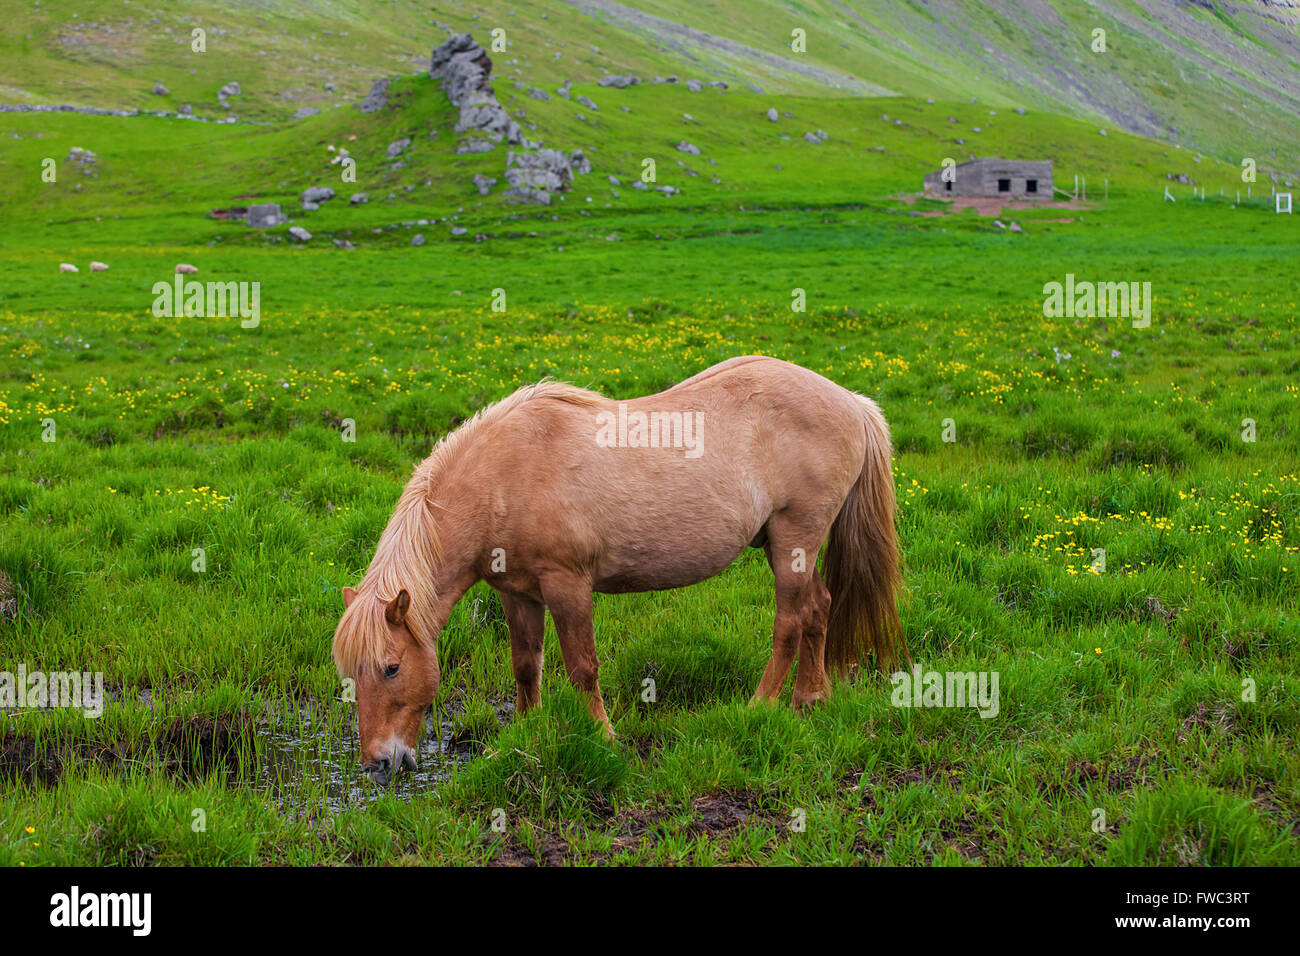 A lovely  Icelandic Horse in a field - Stock Image